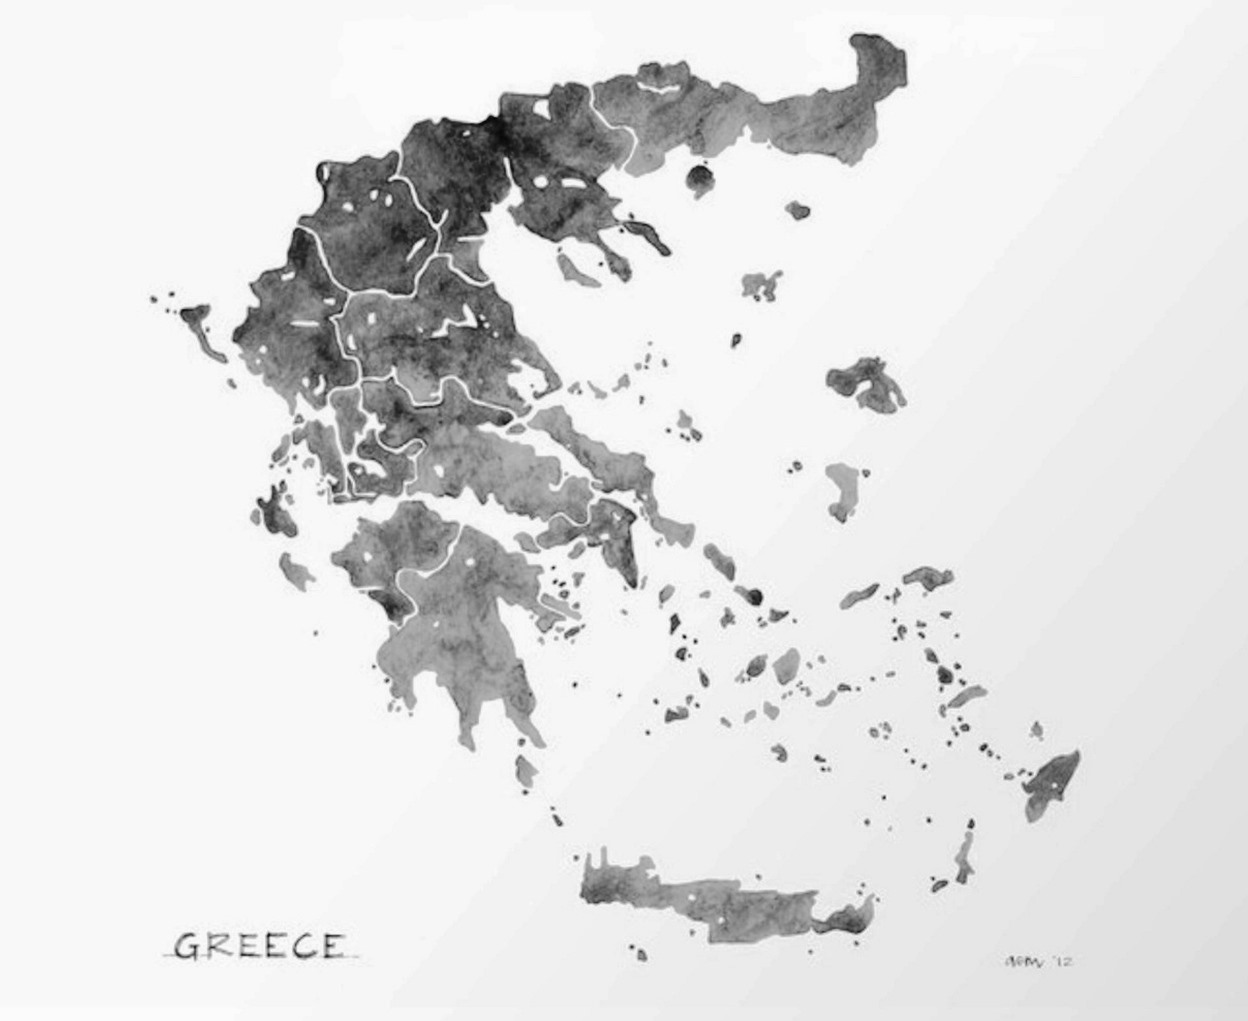 Greece, the southernmost edge of Europe